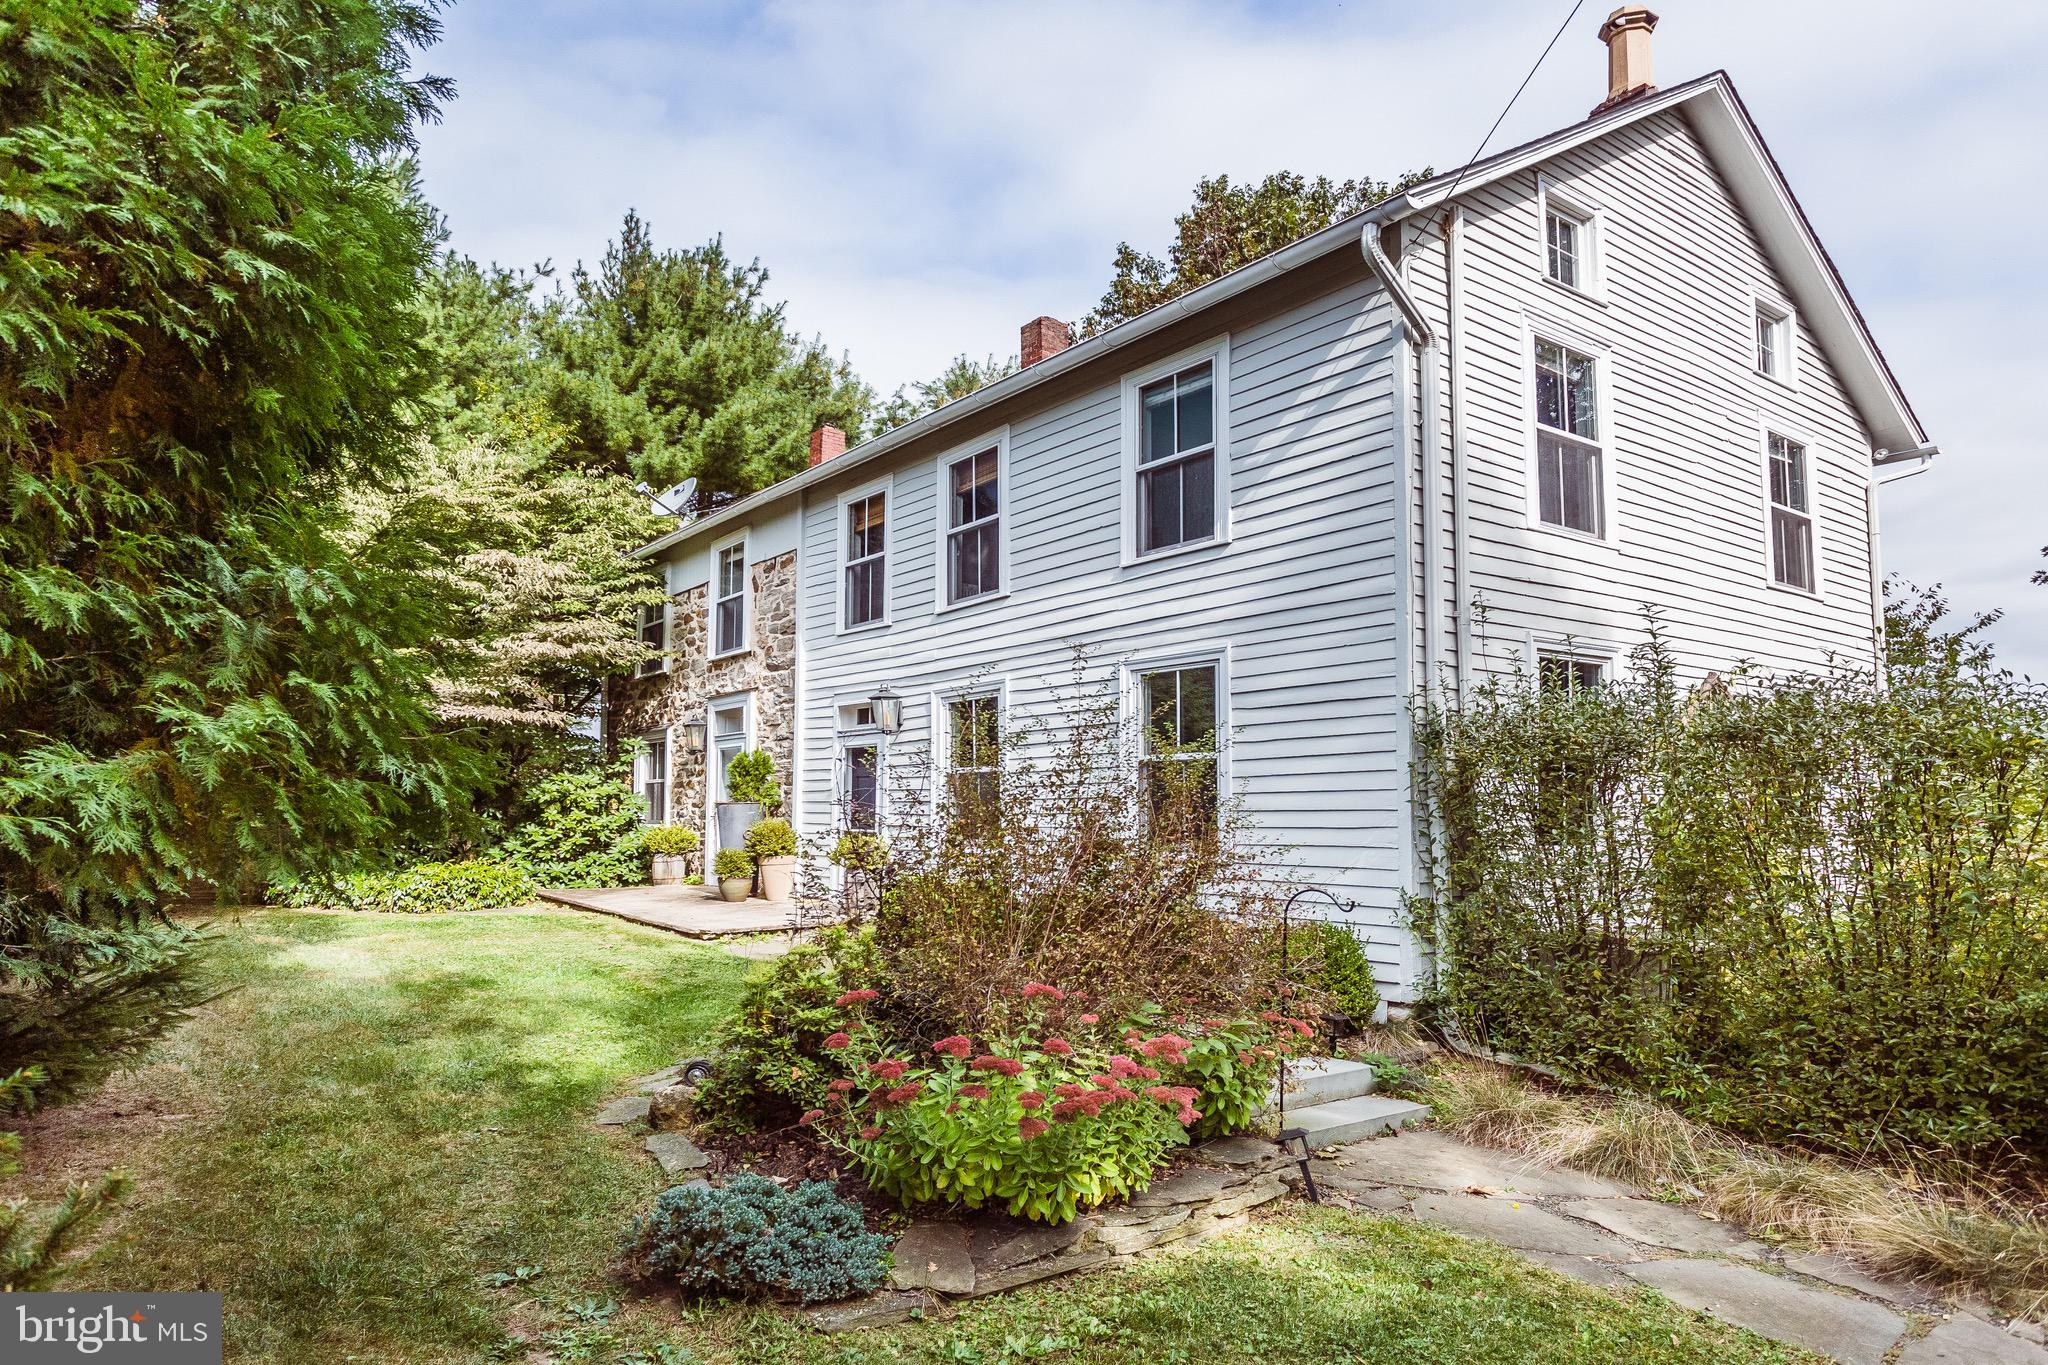 6275 ROUTE 412, RIEGELSVILLE, PA 18077